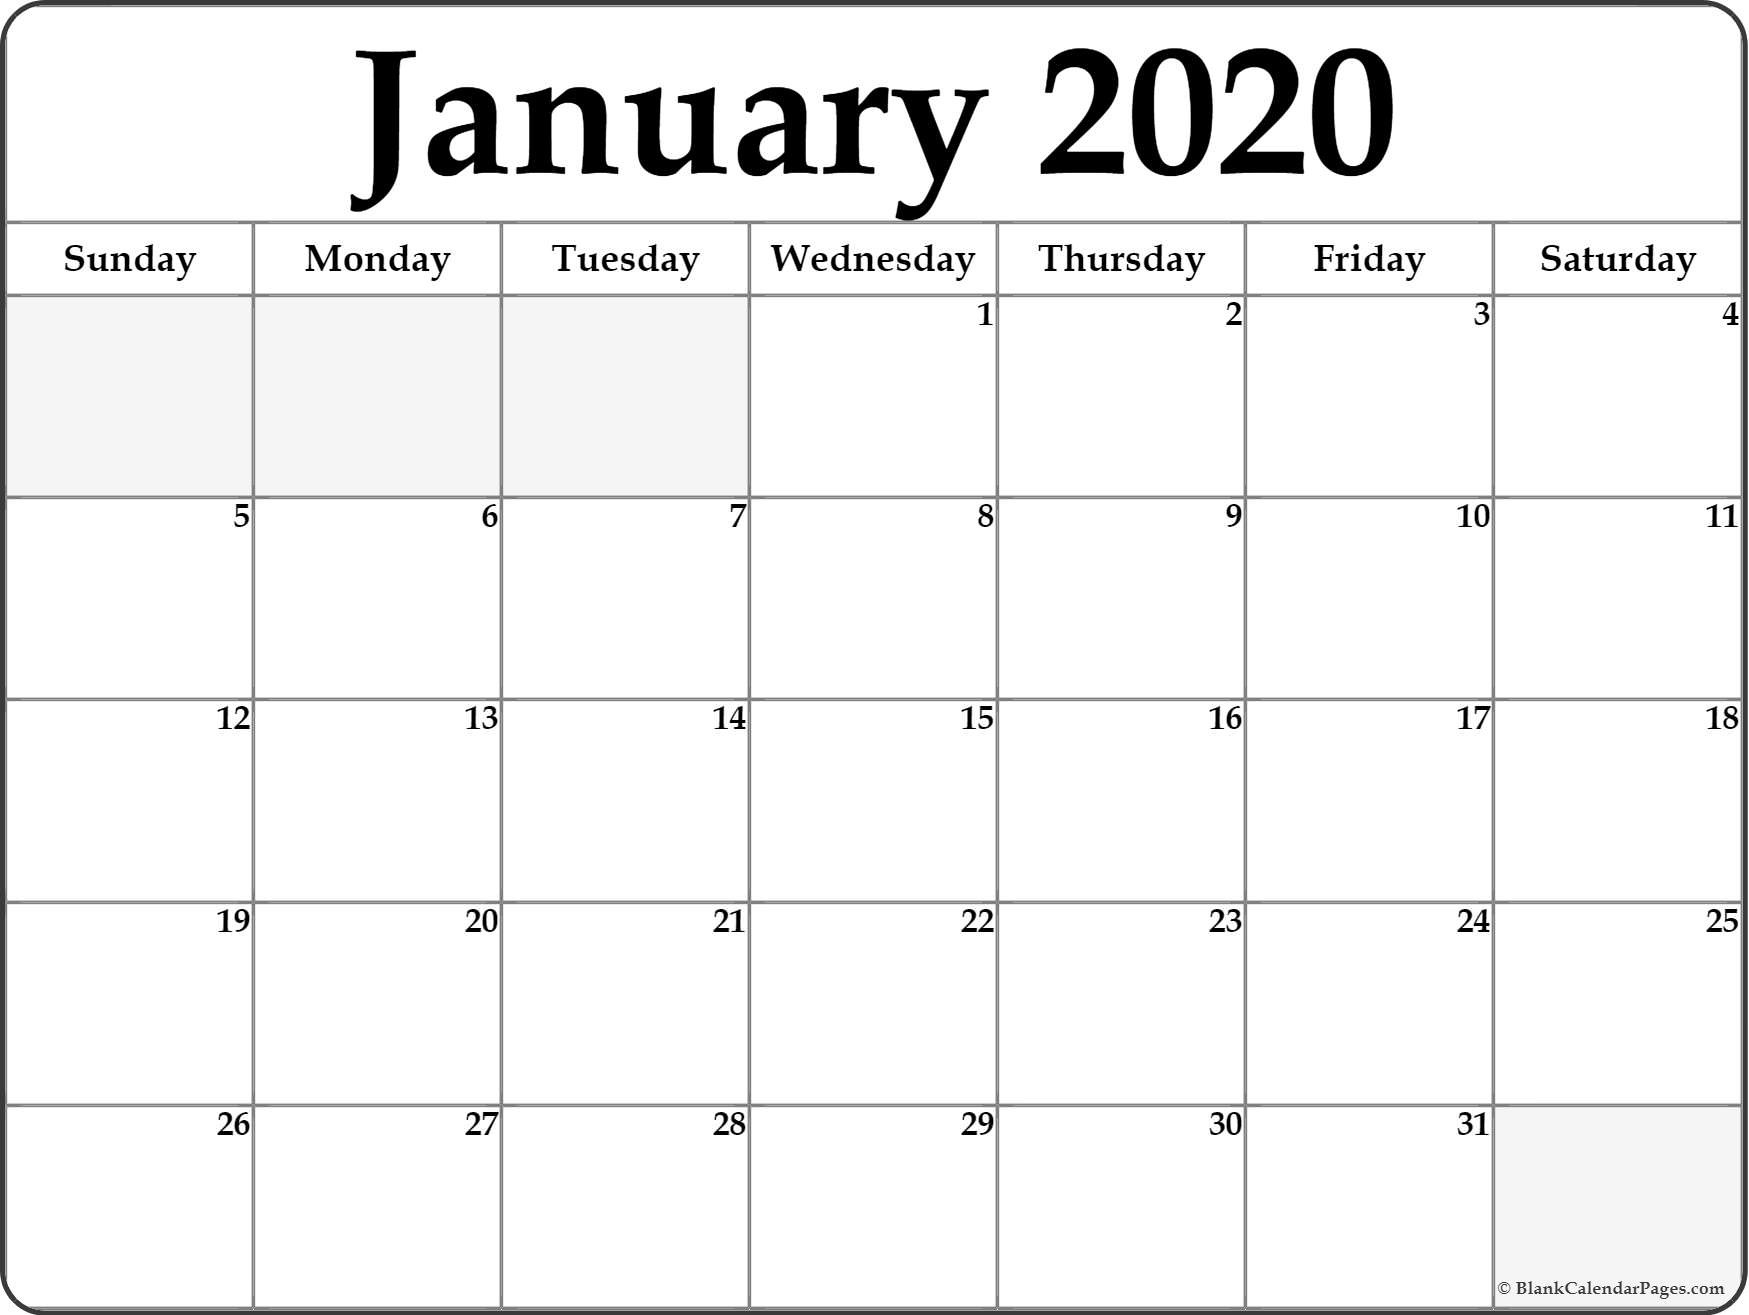 January 2020 Calendar | Free Printable Monthly Calendars  Blank Calendar 2020